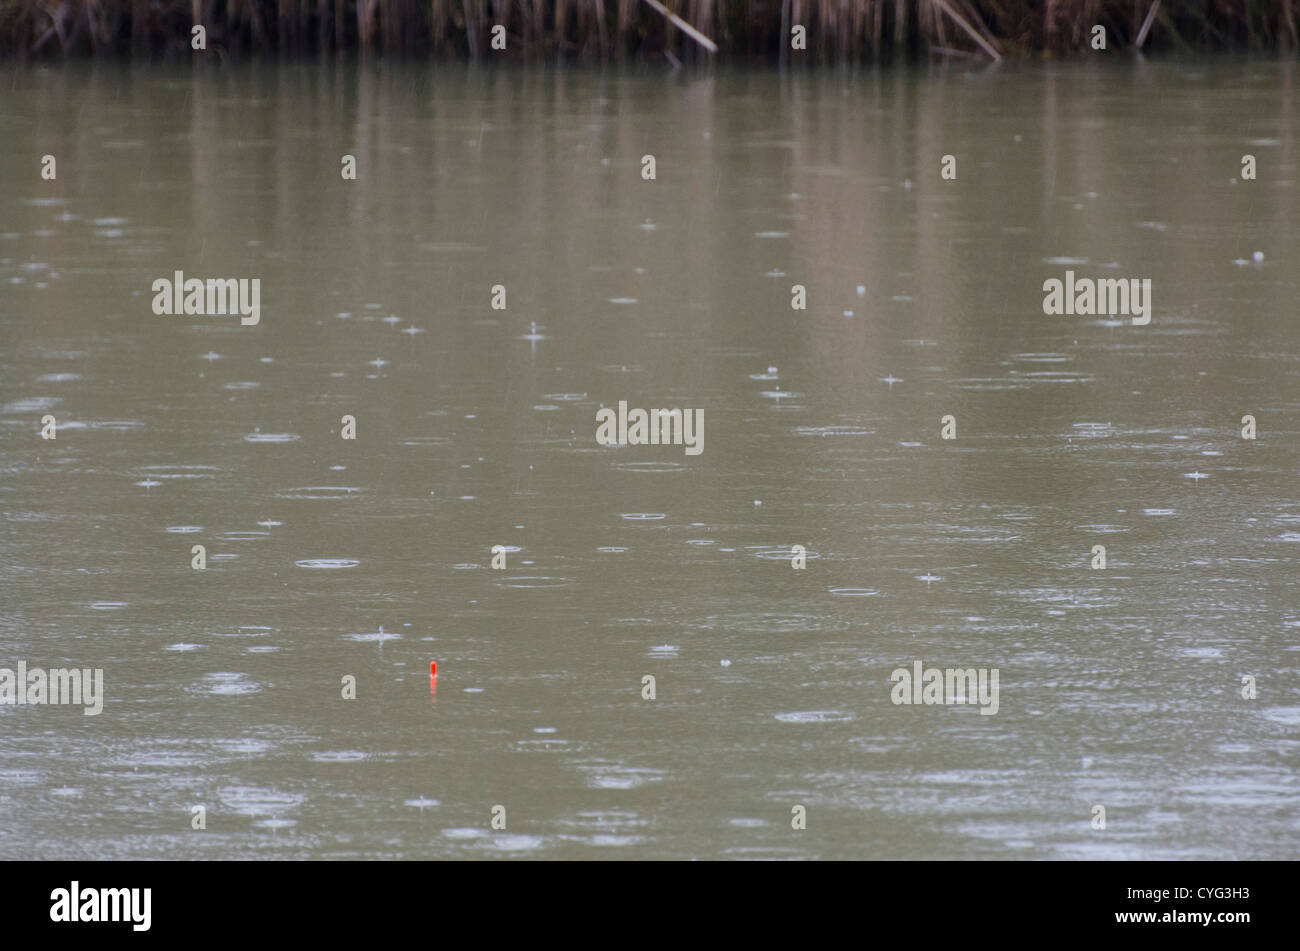 Raining when fishing - Stock Image